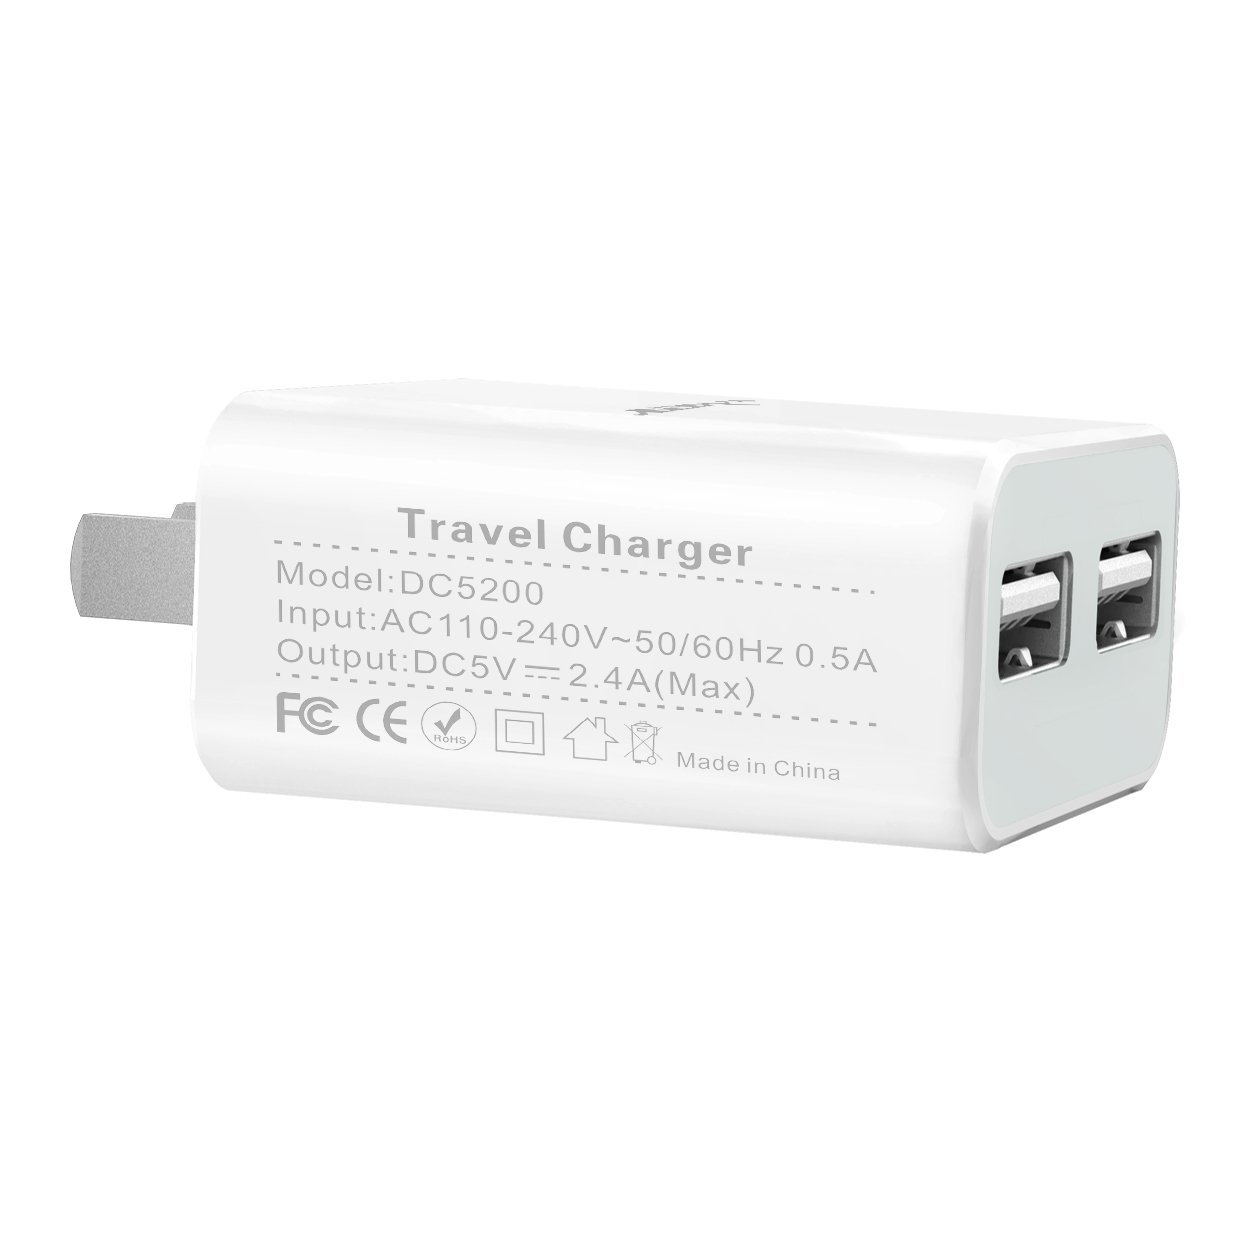 outlet store 3c86e dc1bd Buy Dual USB Charger: Lrker 2.4A 12W 2 USB Universal Home Wall ...